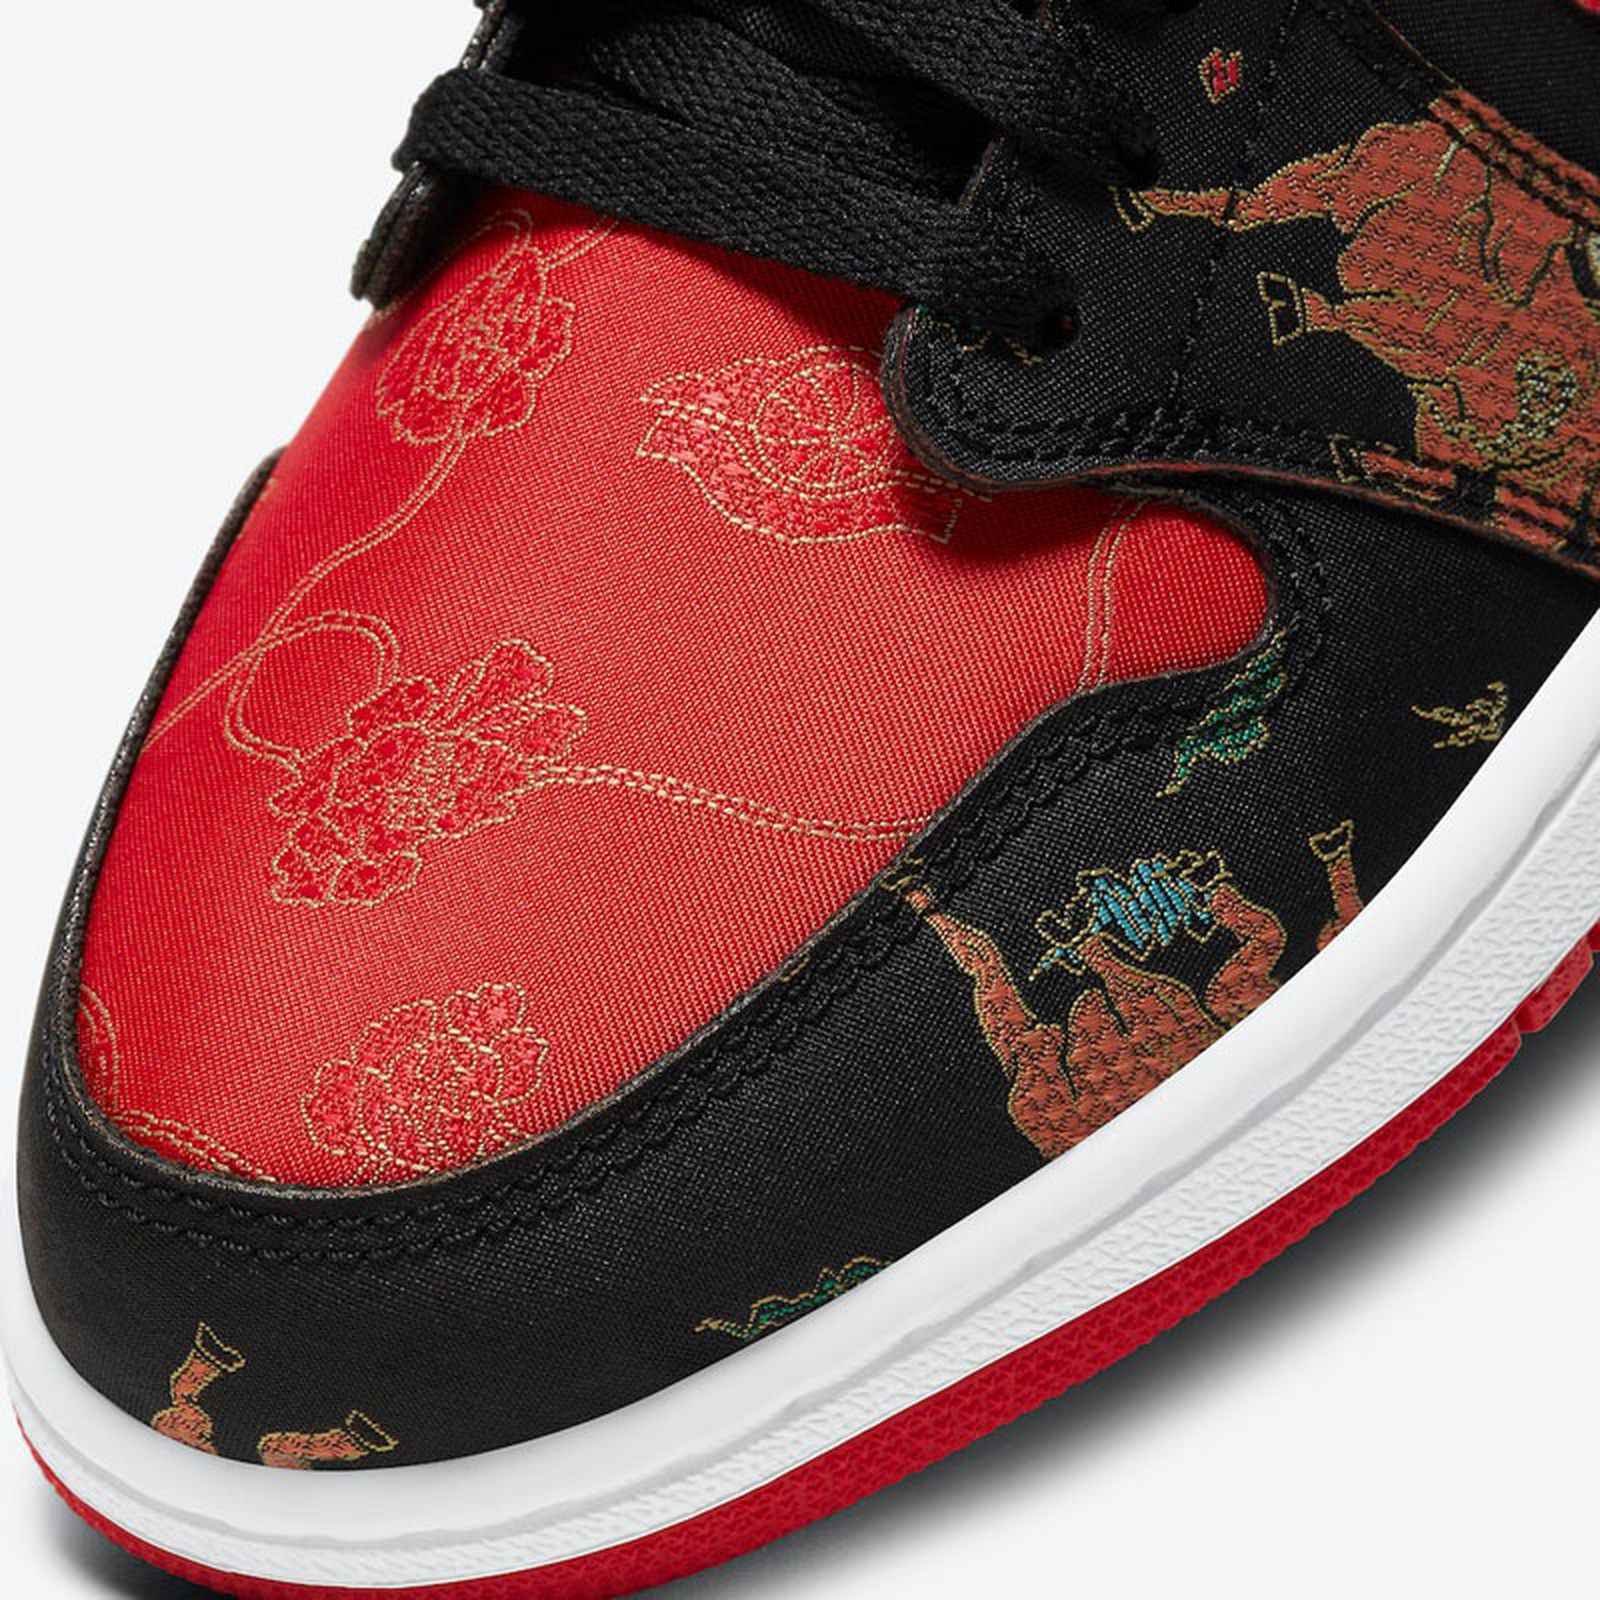 nike-air-jordan-1-low-cny-2021-release-date-price-02